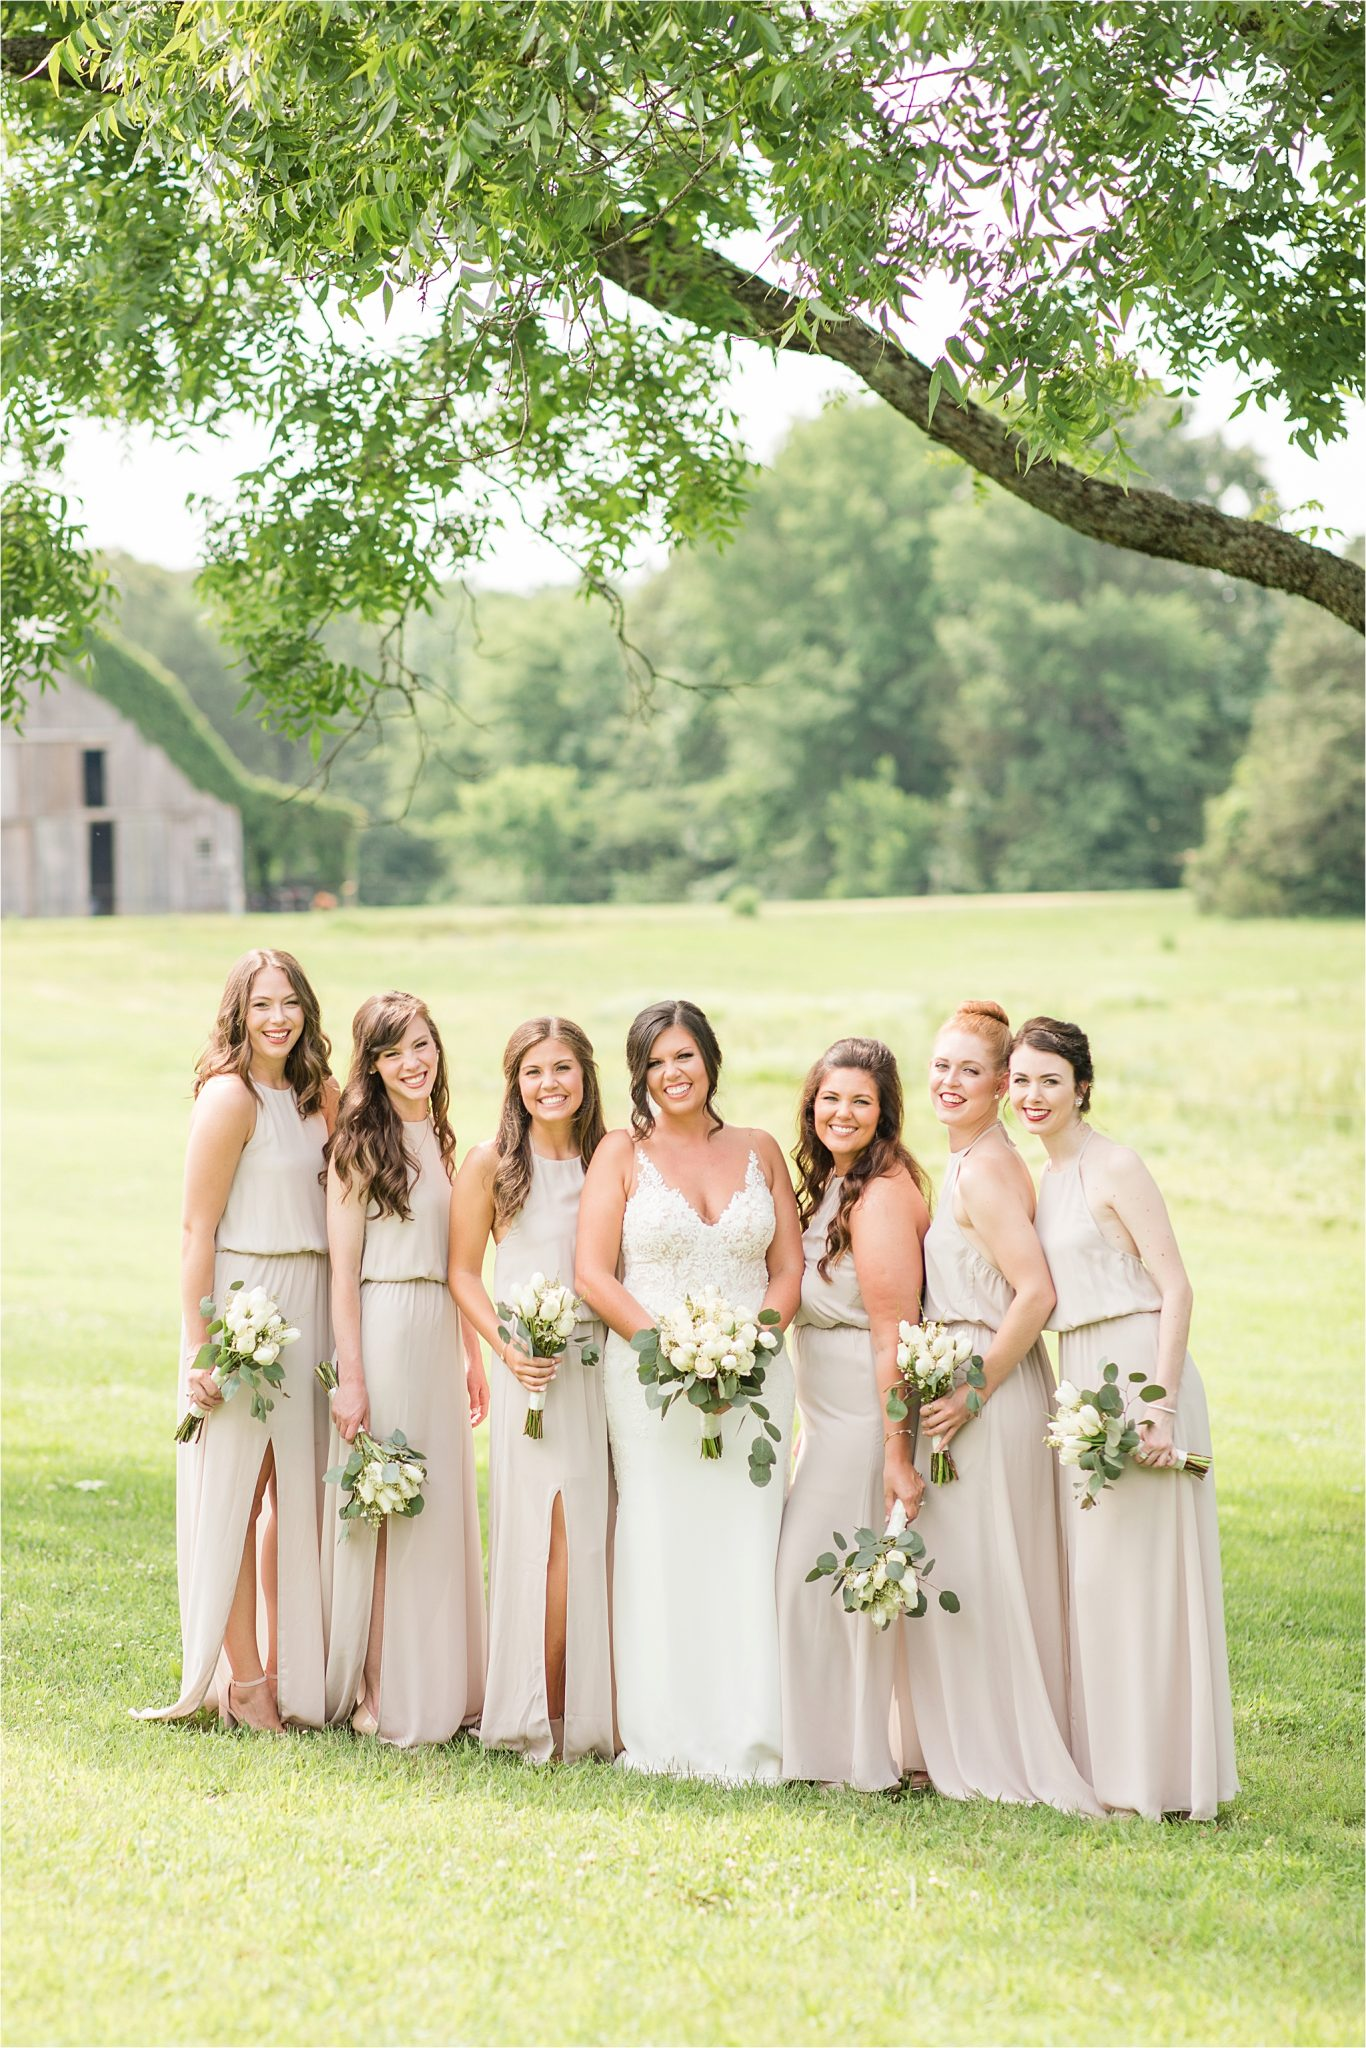 HHedge Farm Wedding, Alabama Wedding Photographer, Barn Wedding, Bride and bridesmaids, Neutrals